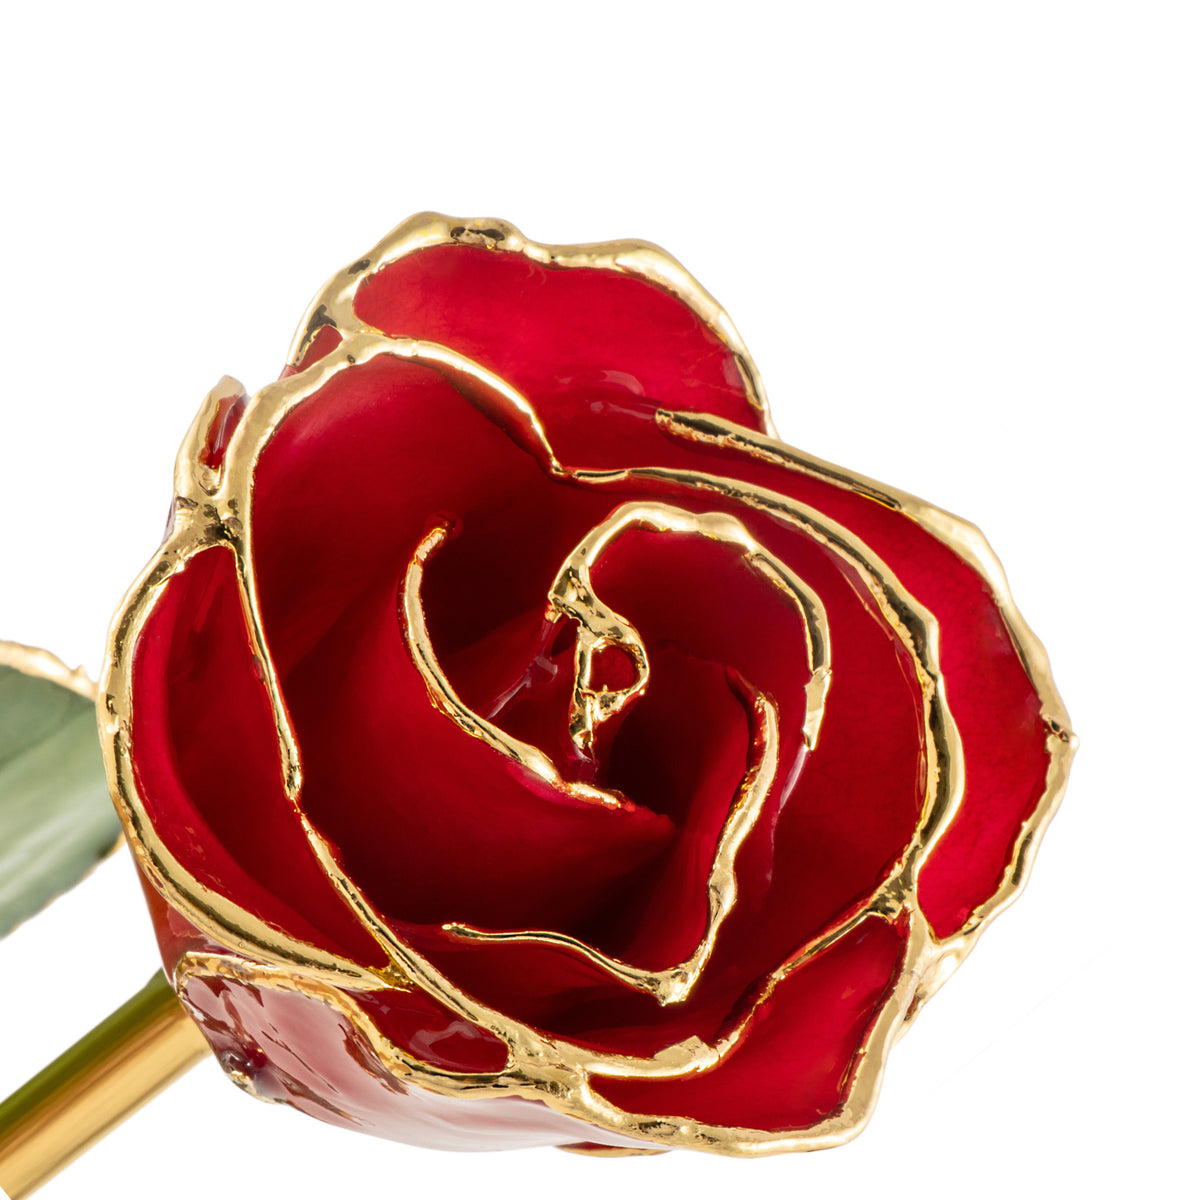 24K Gold Trimmed Forever Rose with Red Petals. View of Stem, Leaves, and Rose Petals and Showing Detail of Gold Trim oblique view looking down into bloom